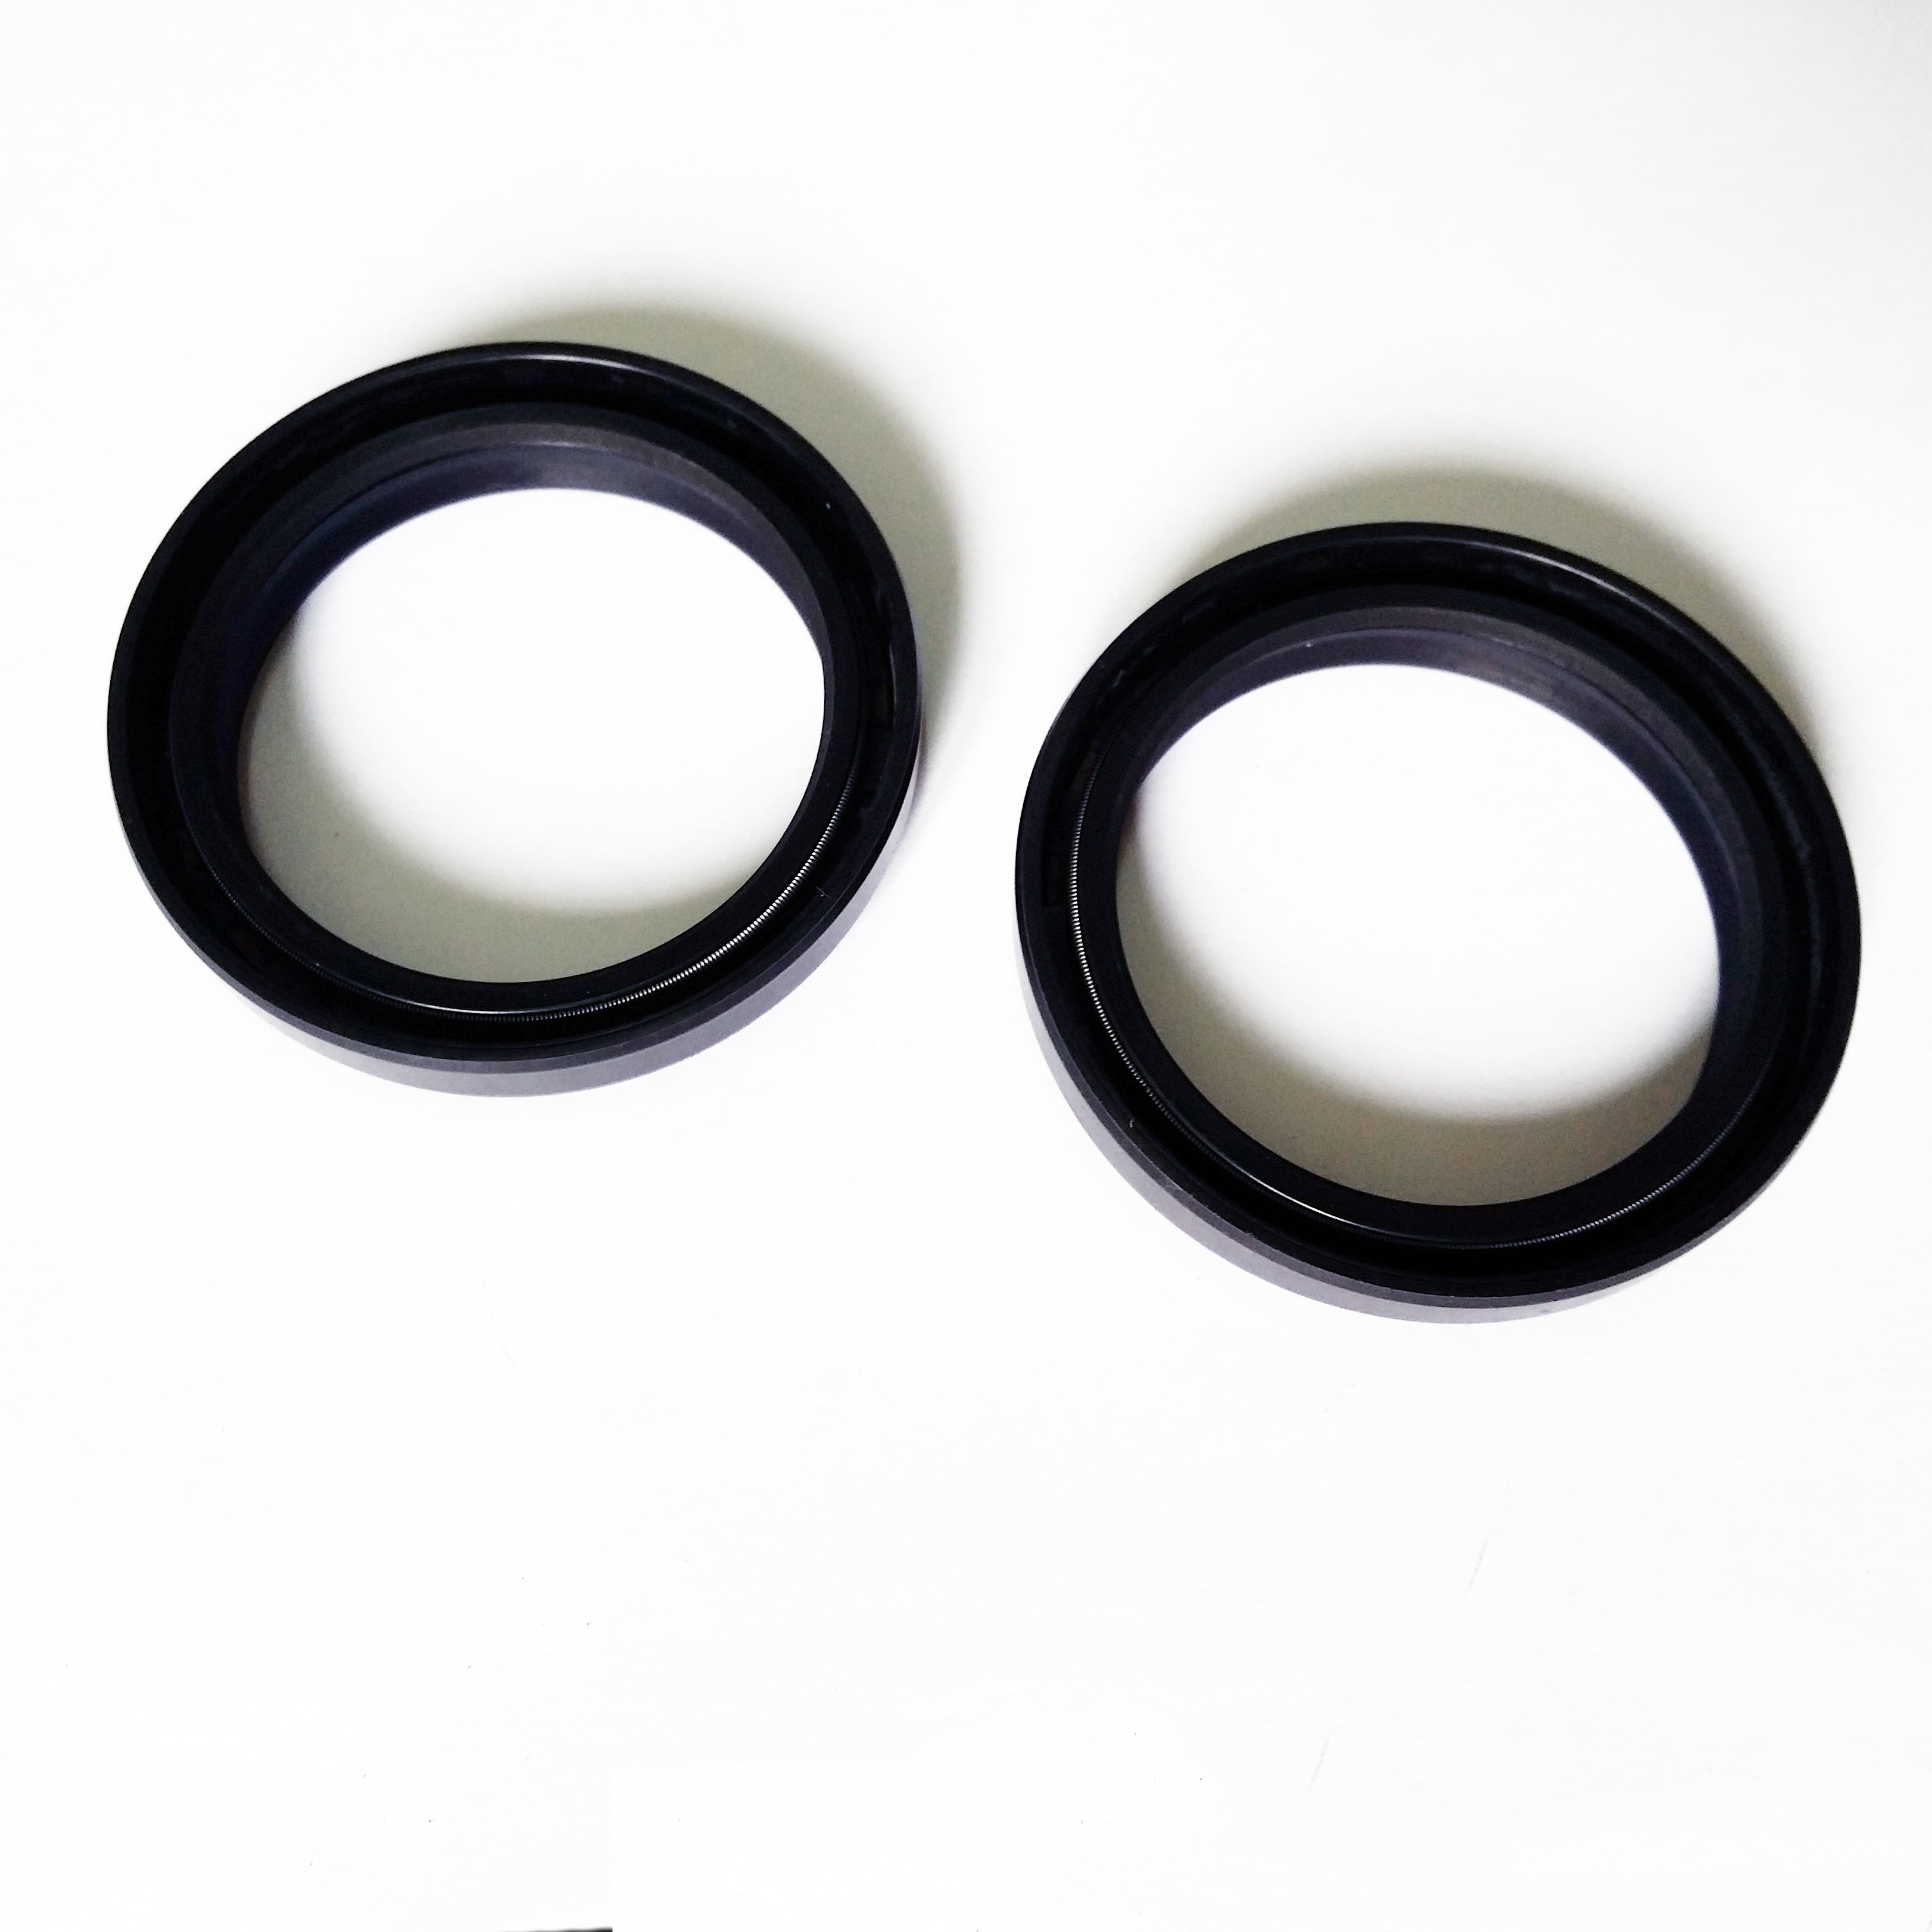 K-Tech KTM 525 SX-F 2000-2001 NOK Front Fork Oil Seals 43x53x9.5mm